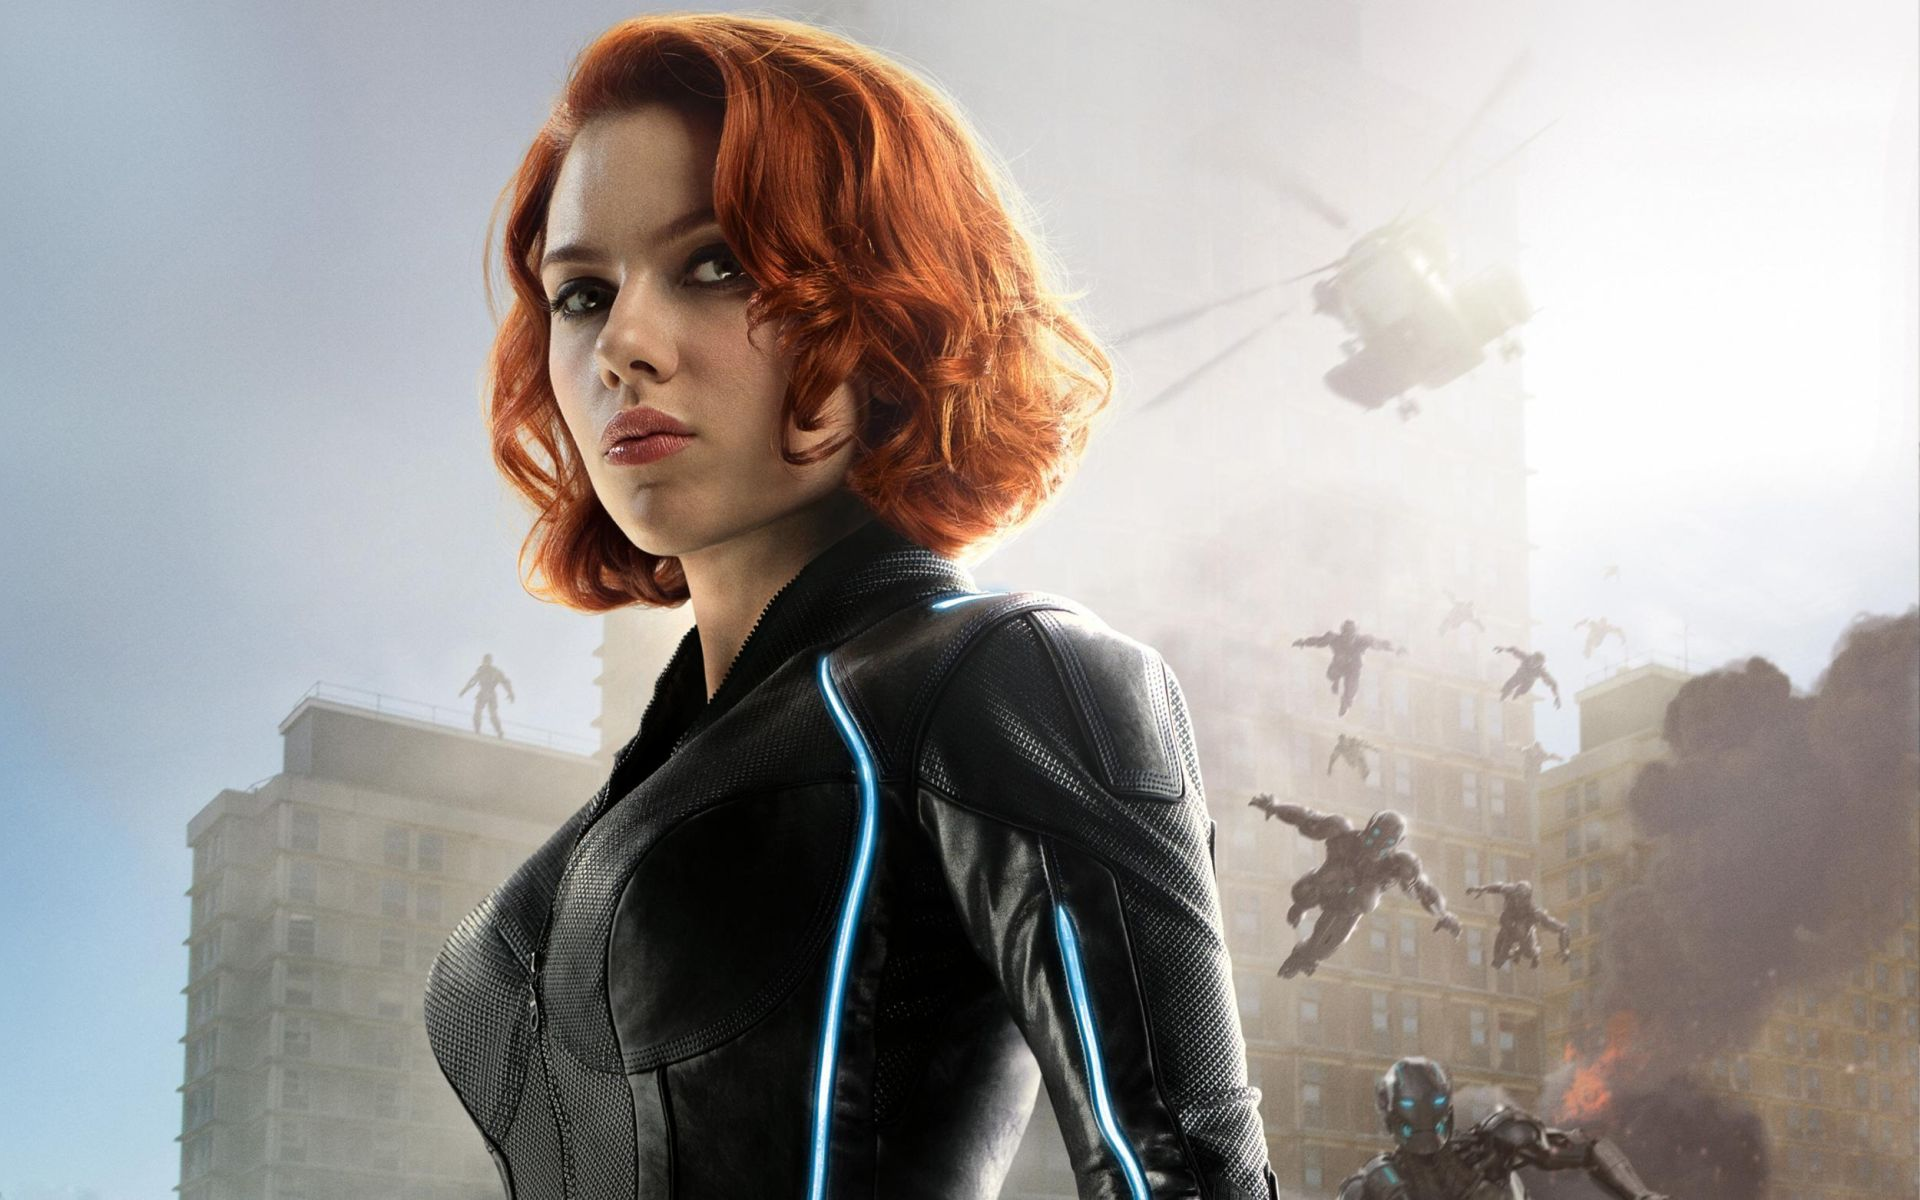 Black Widow 'special look' trailer gives film's villain a proper introduction